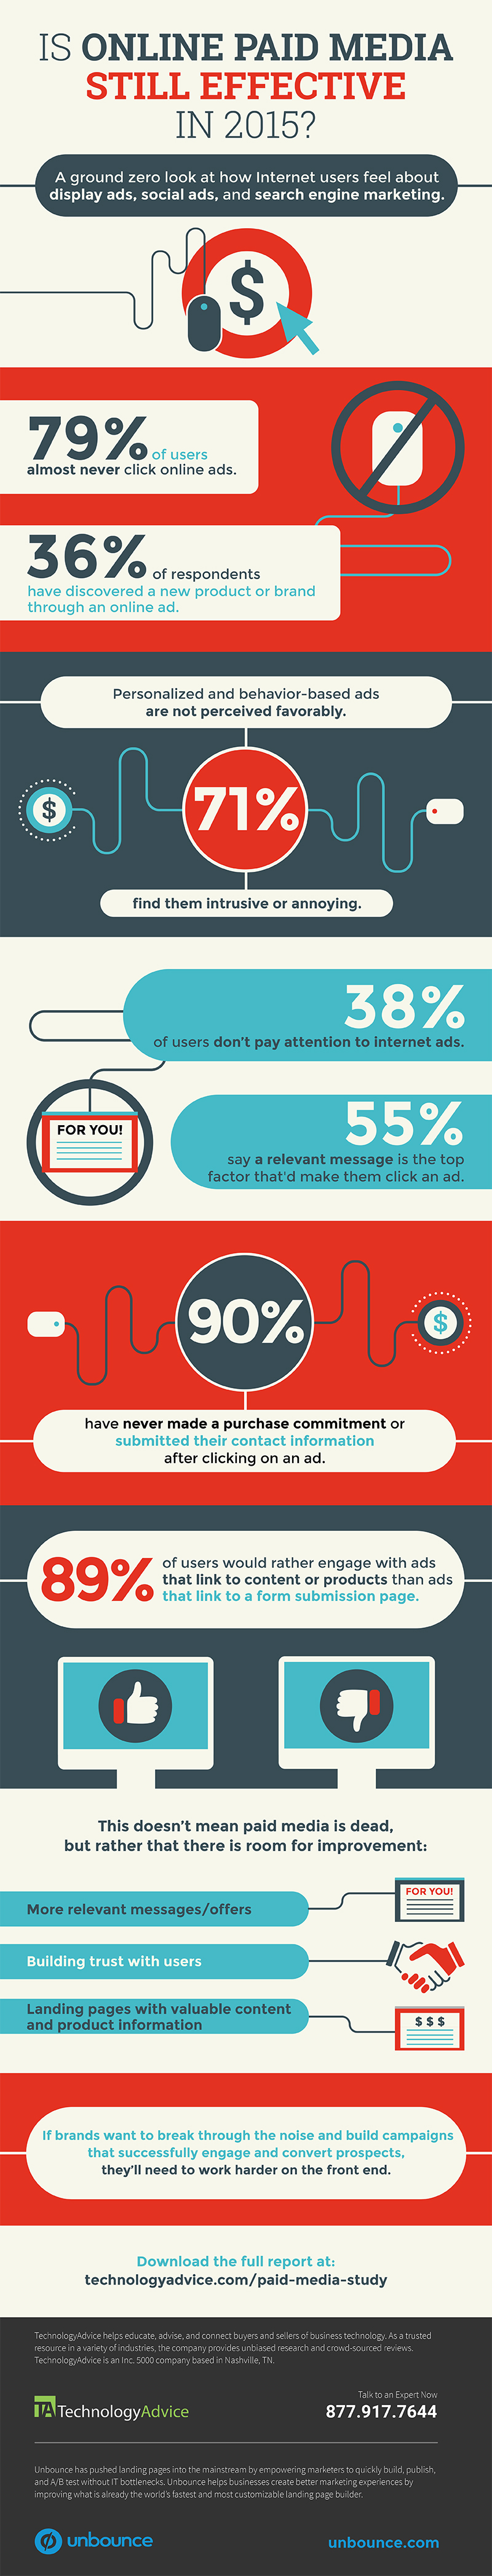 technologyadvice-ppc-infographic-r4